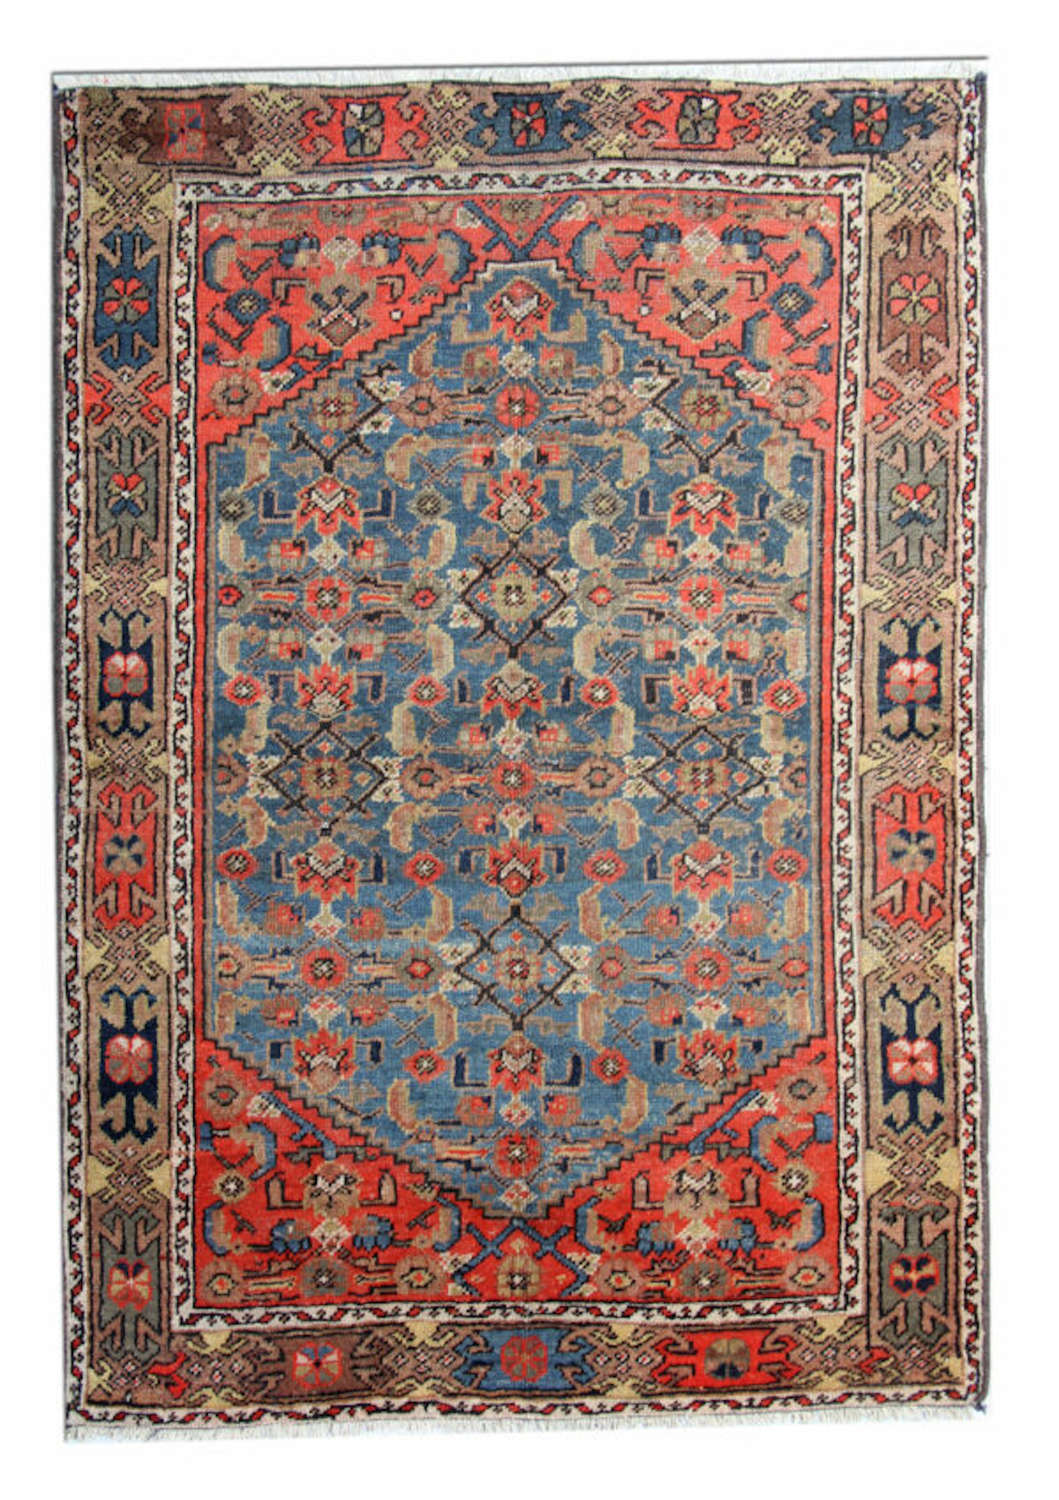 Antique Rugs, Persian Rug From Malayer